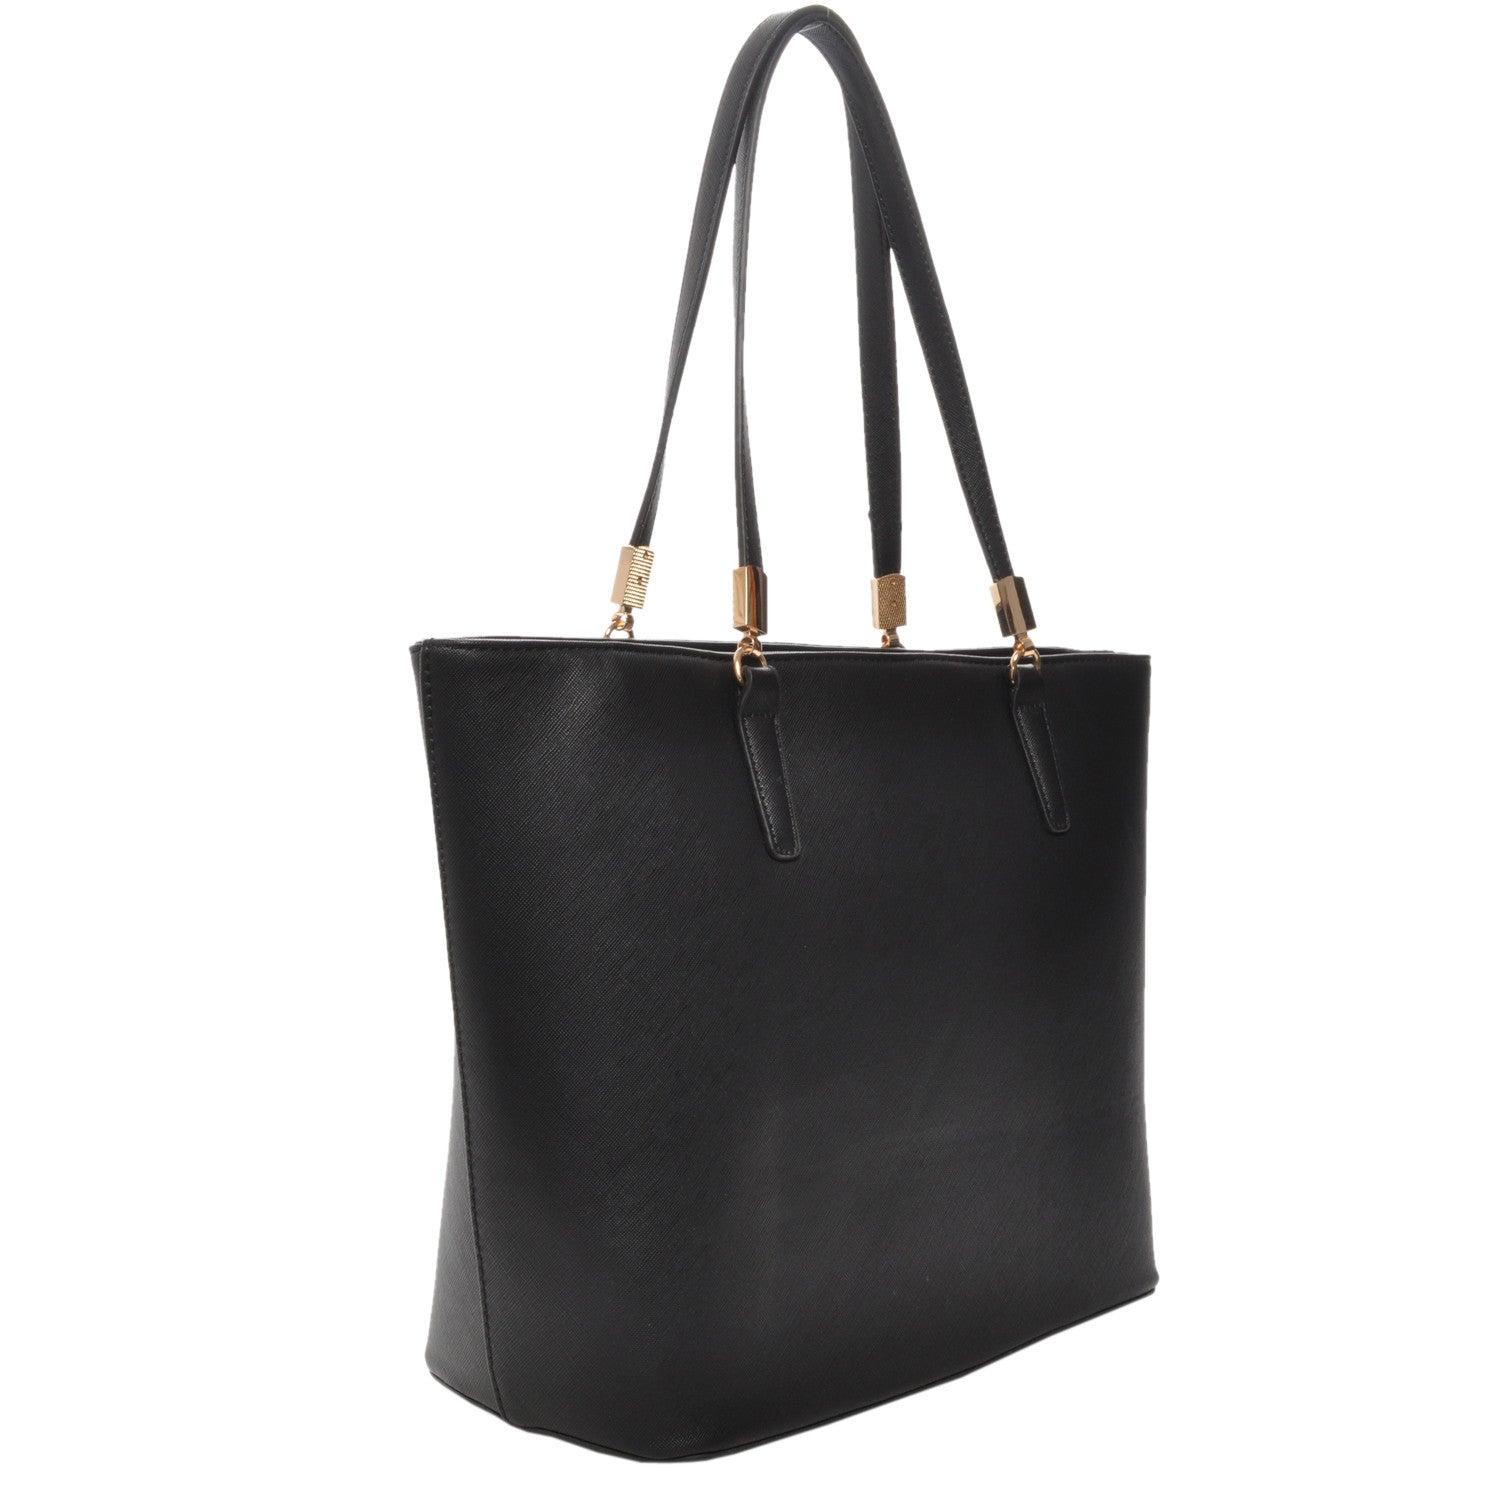 Mechaly Women's Sydney Black Vegan Leather Tote Handbag